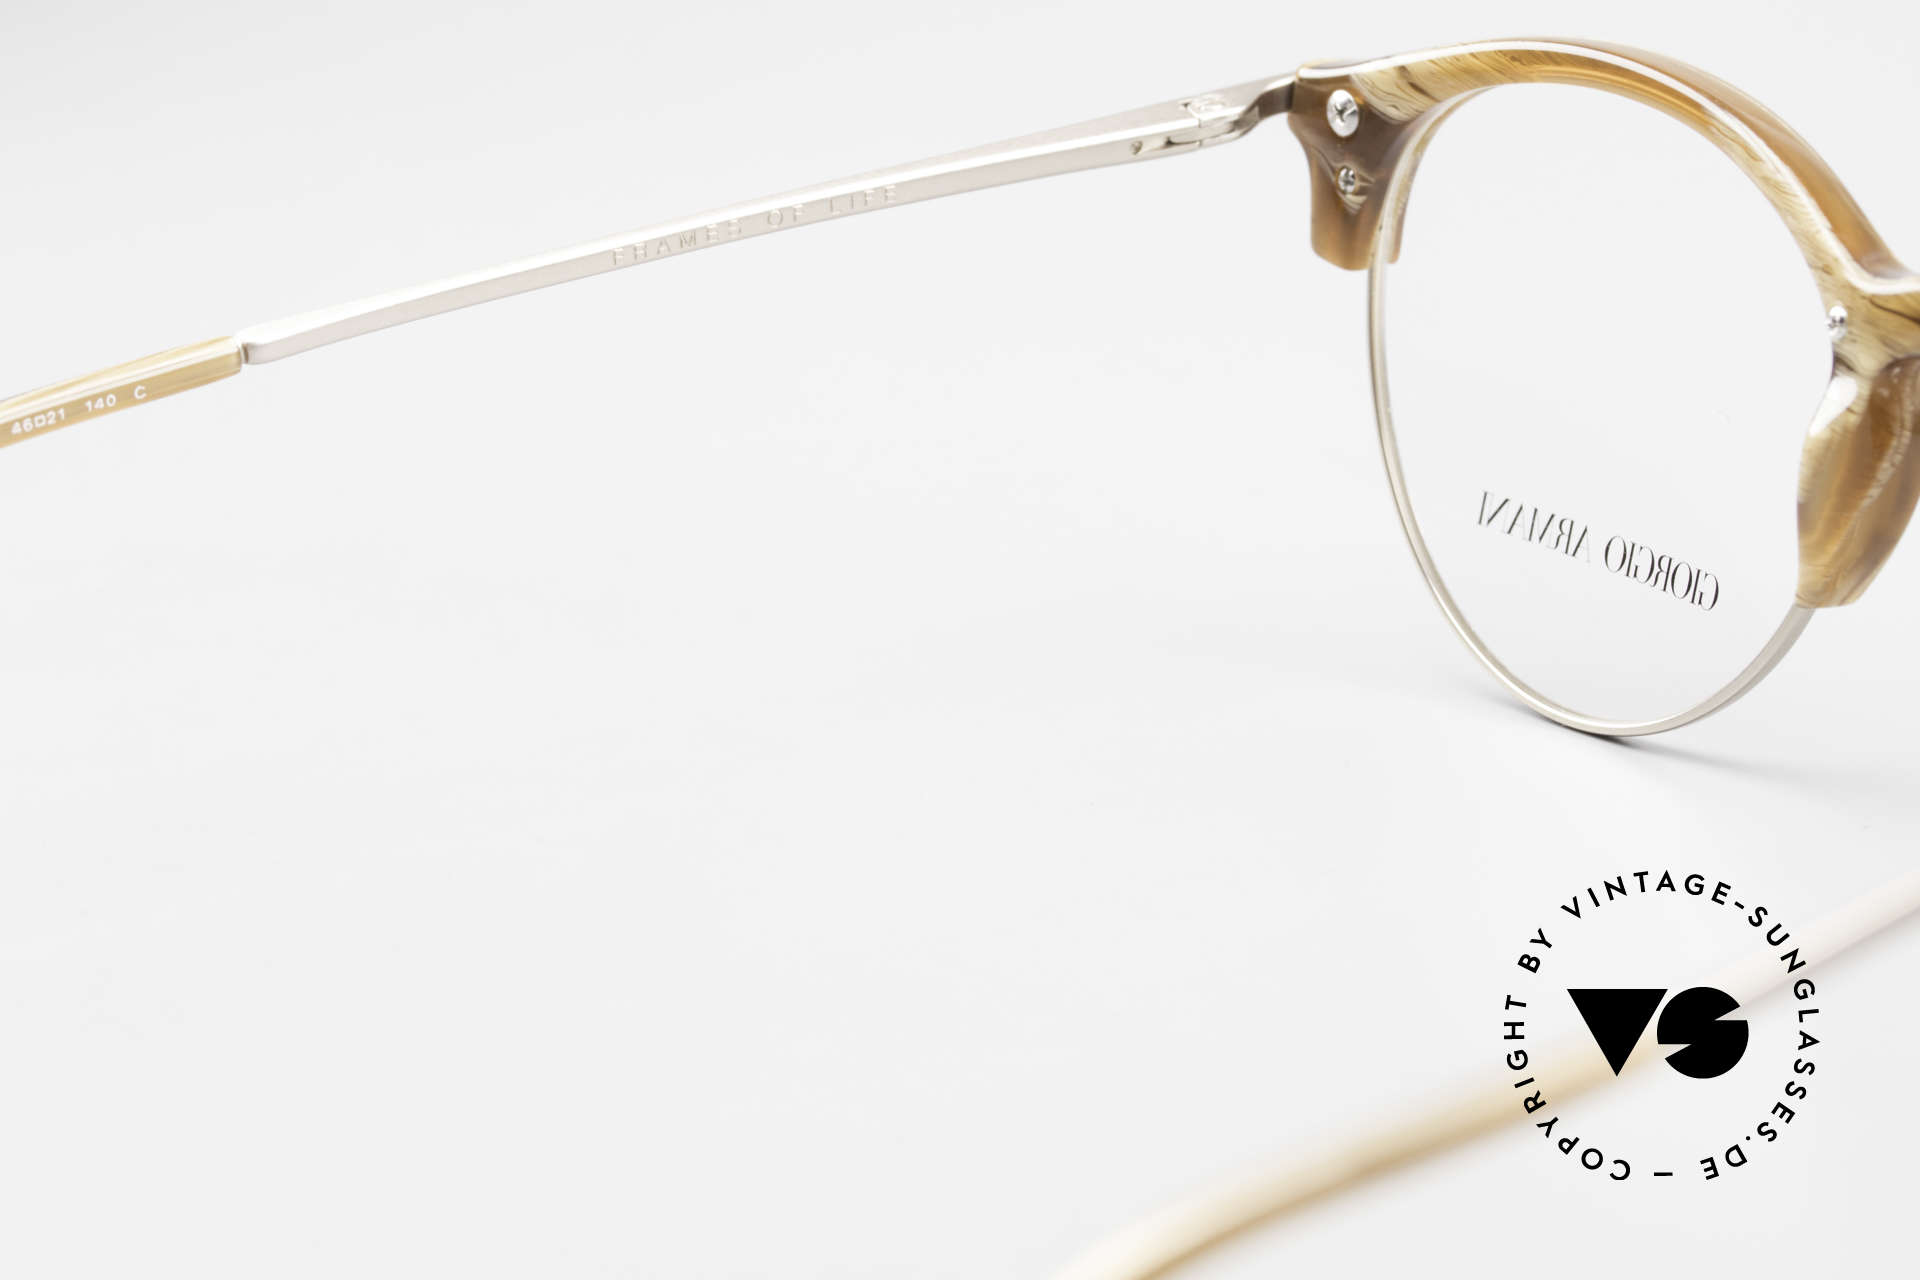 Giorgio Armani 7014 Panto Frame With Spring Hinges, Size: medium, Made for Men and Women